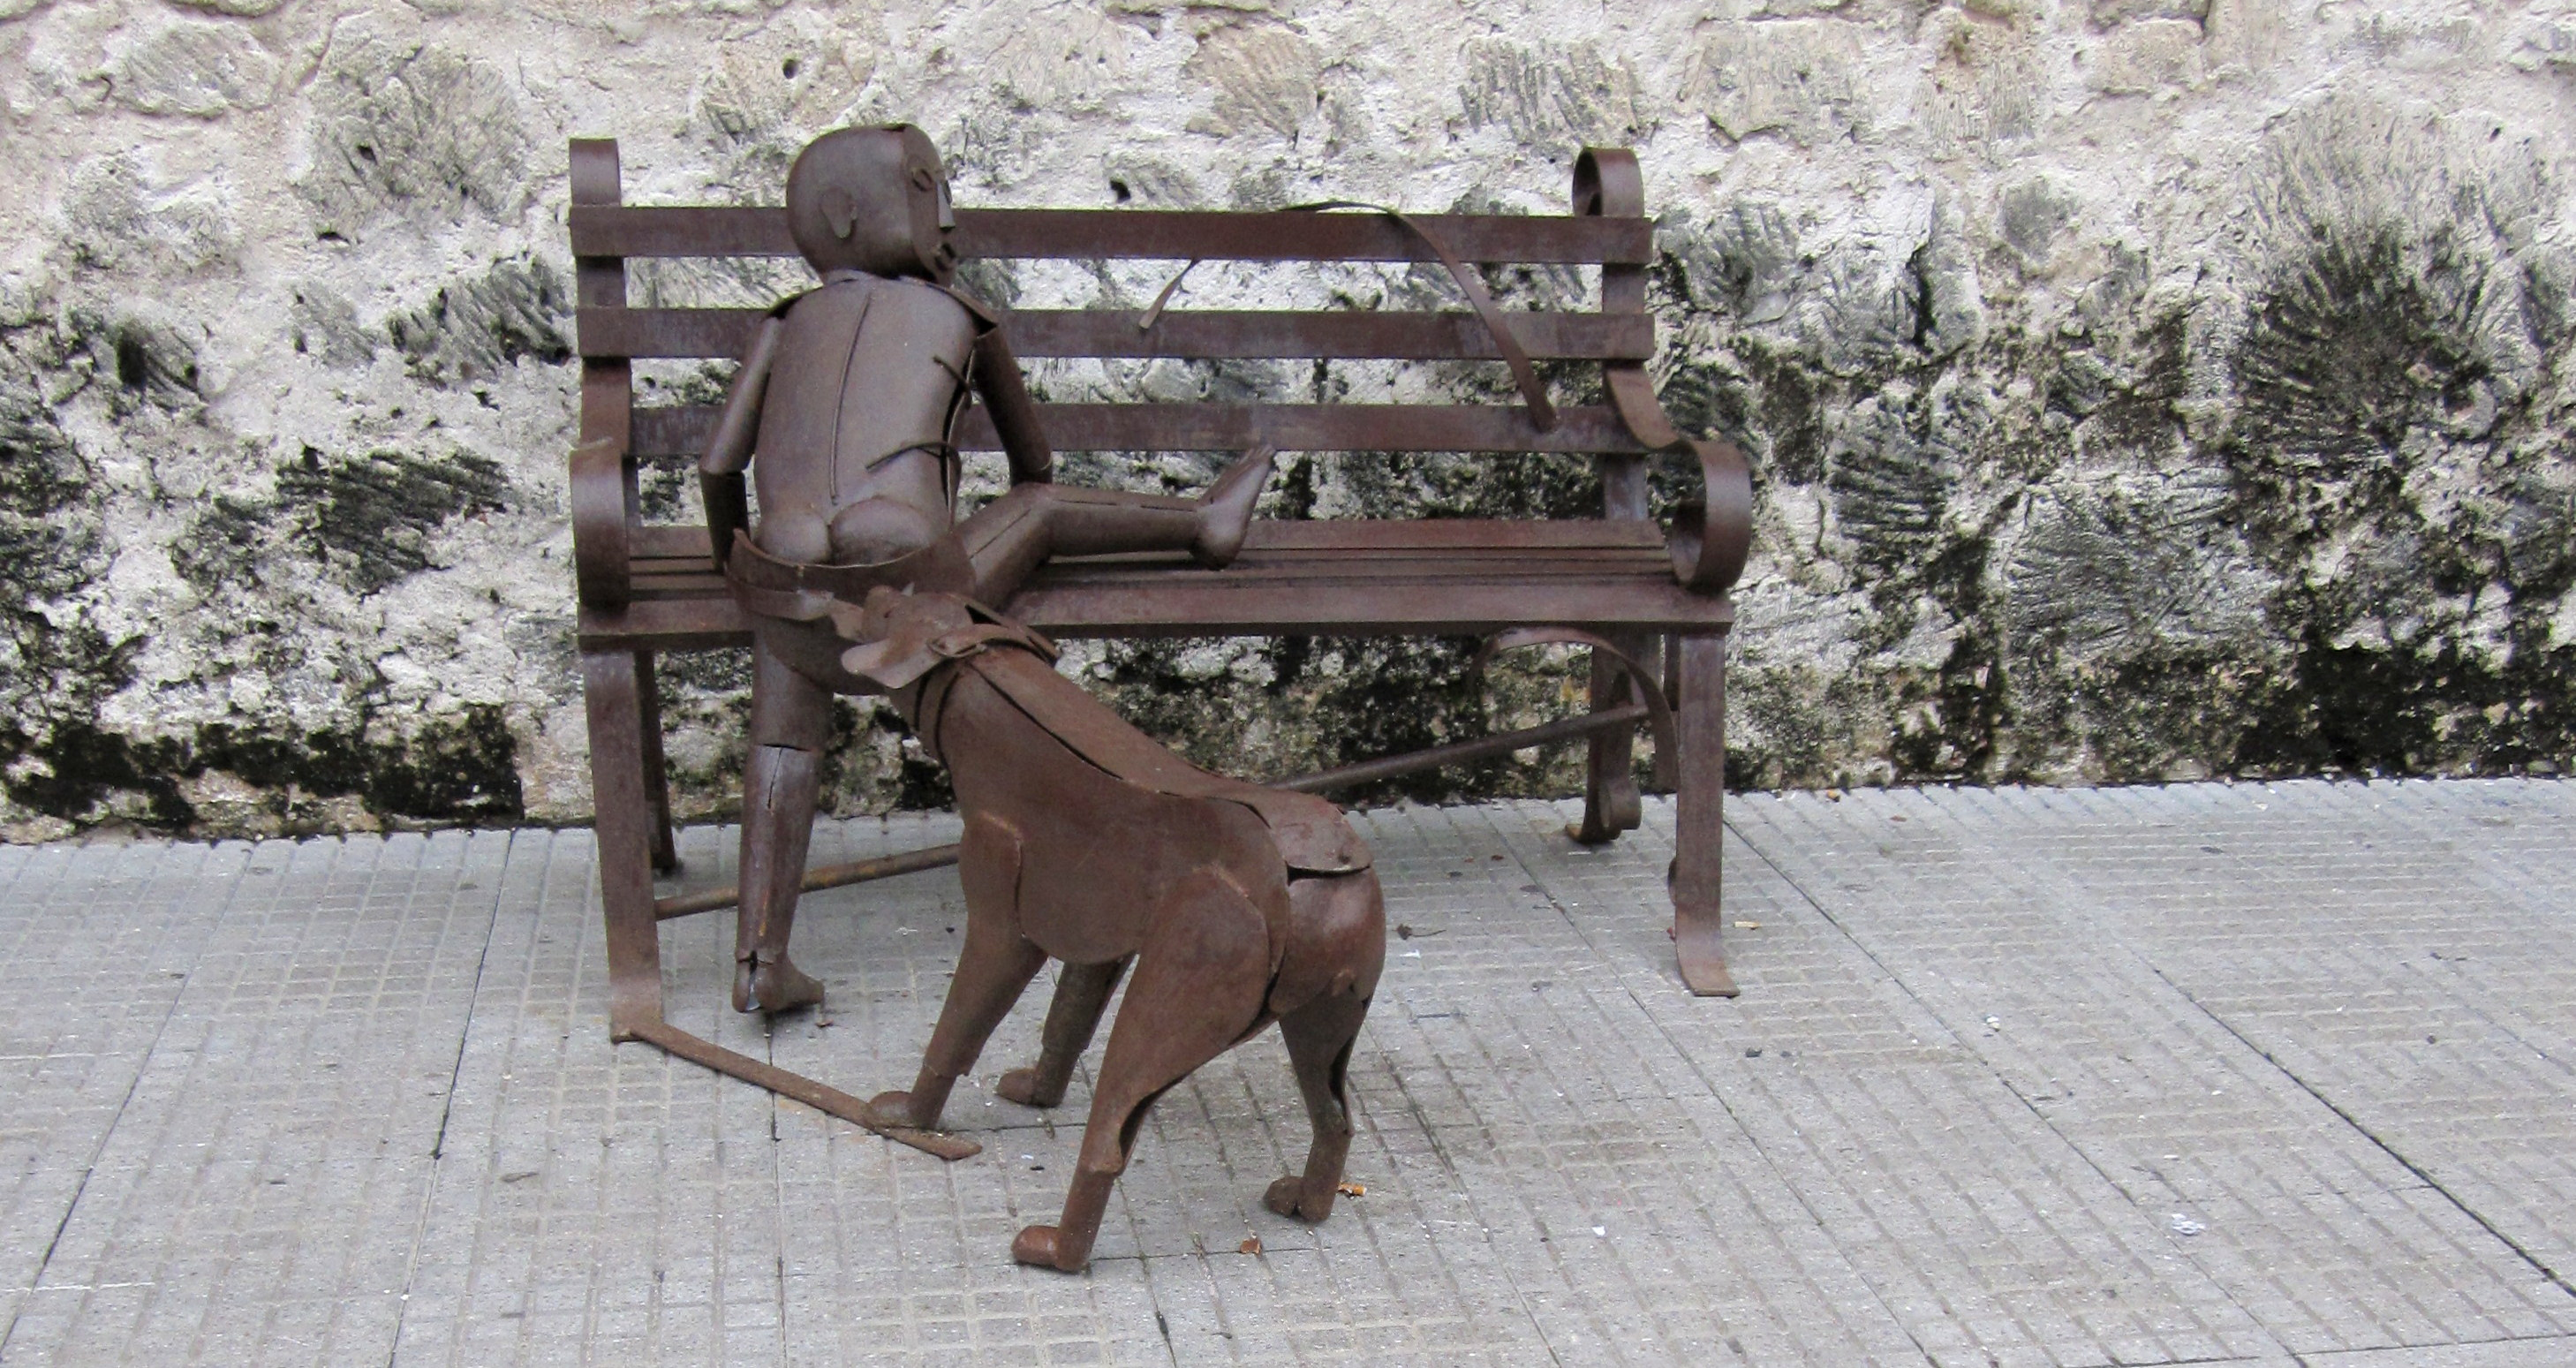 Sculpture in Cartagena